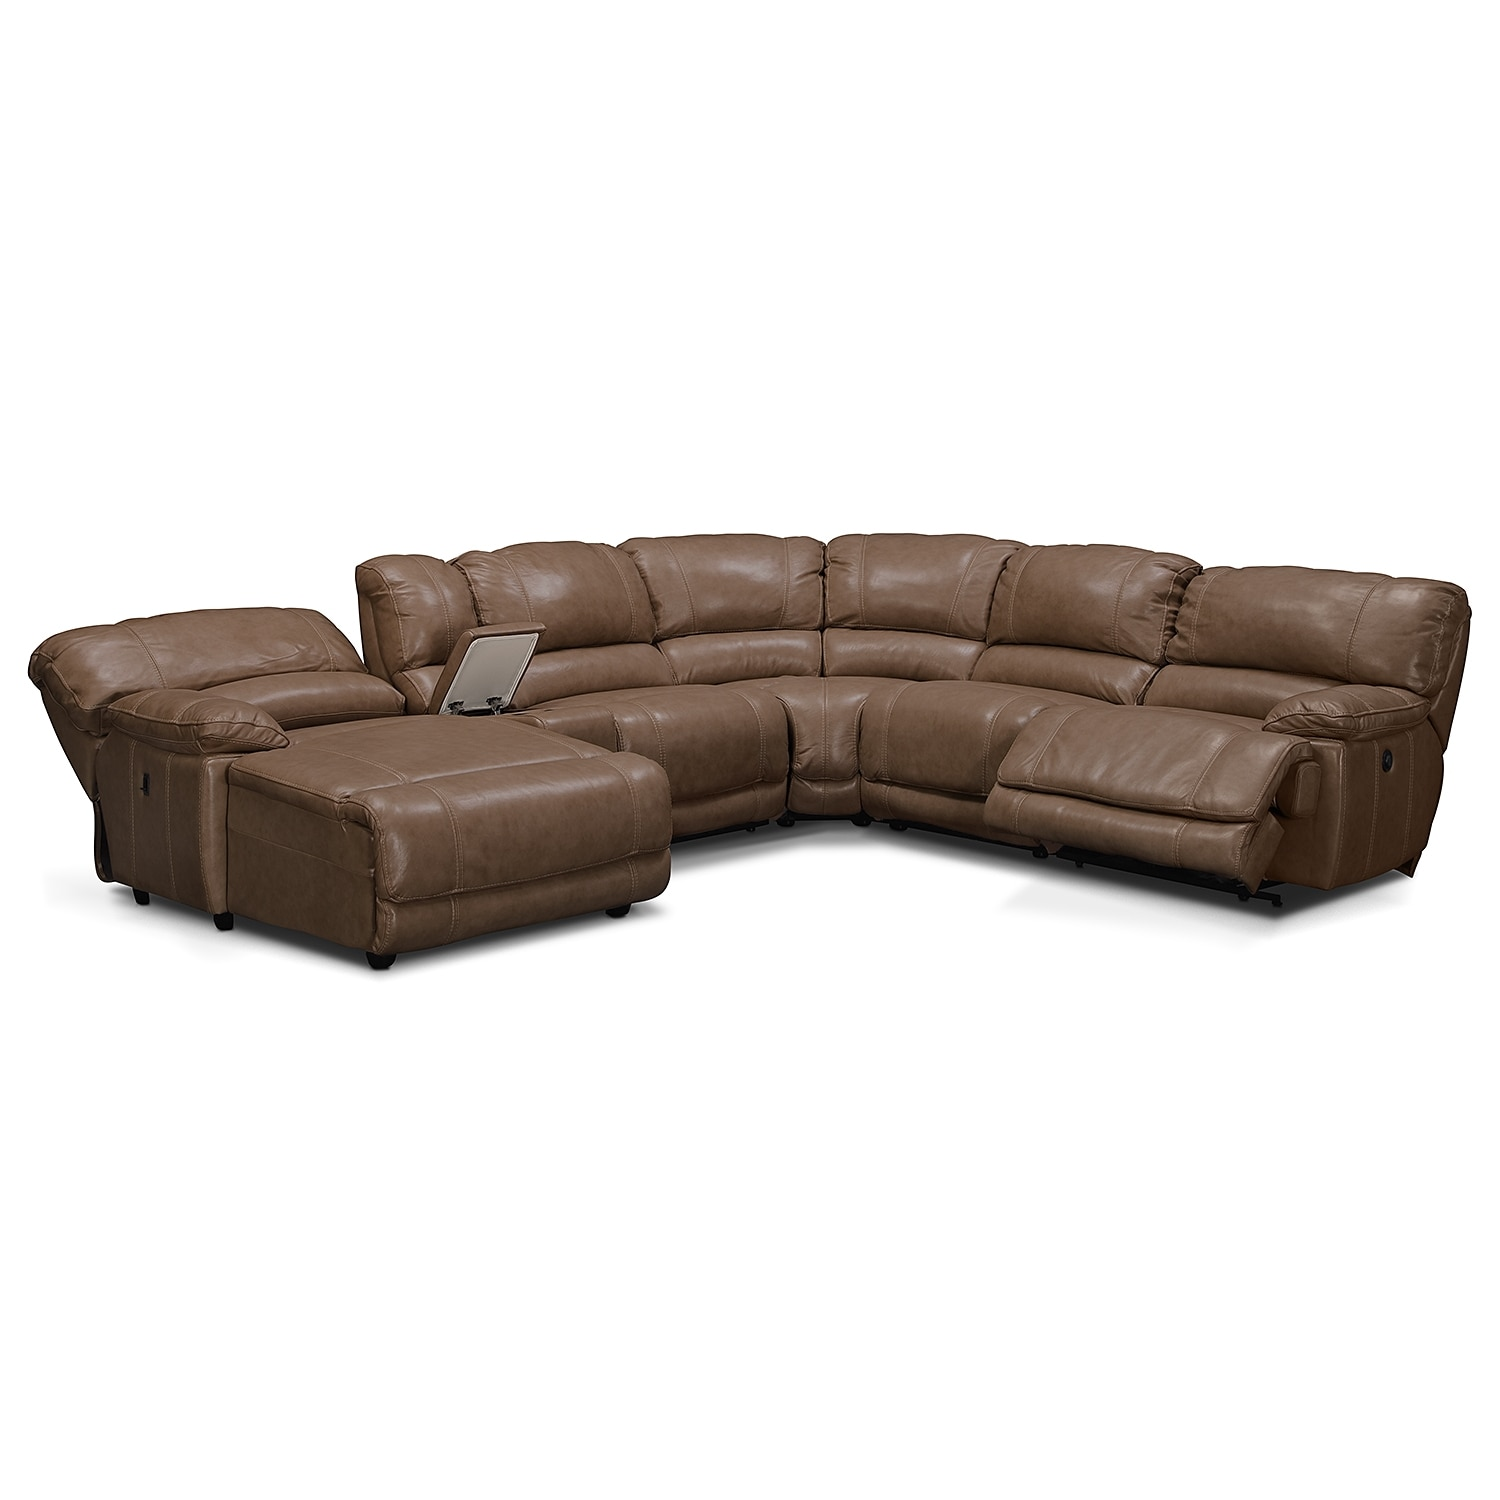 St malo 6 piece power reclining sectional with left for Brighton taupe 3 piece chaise and sofa set